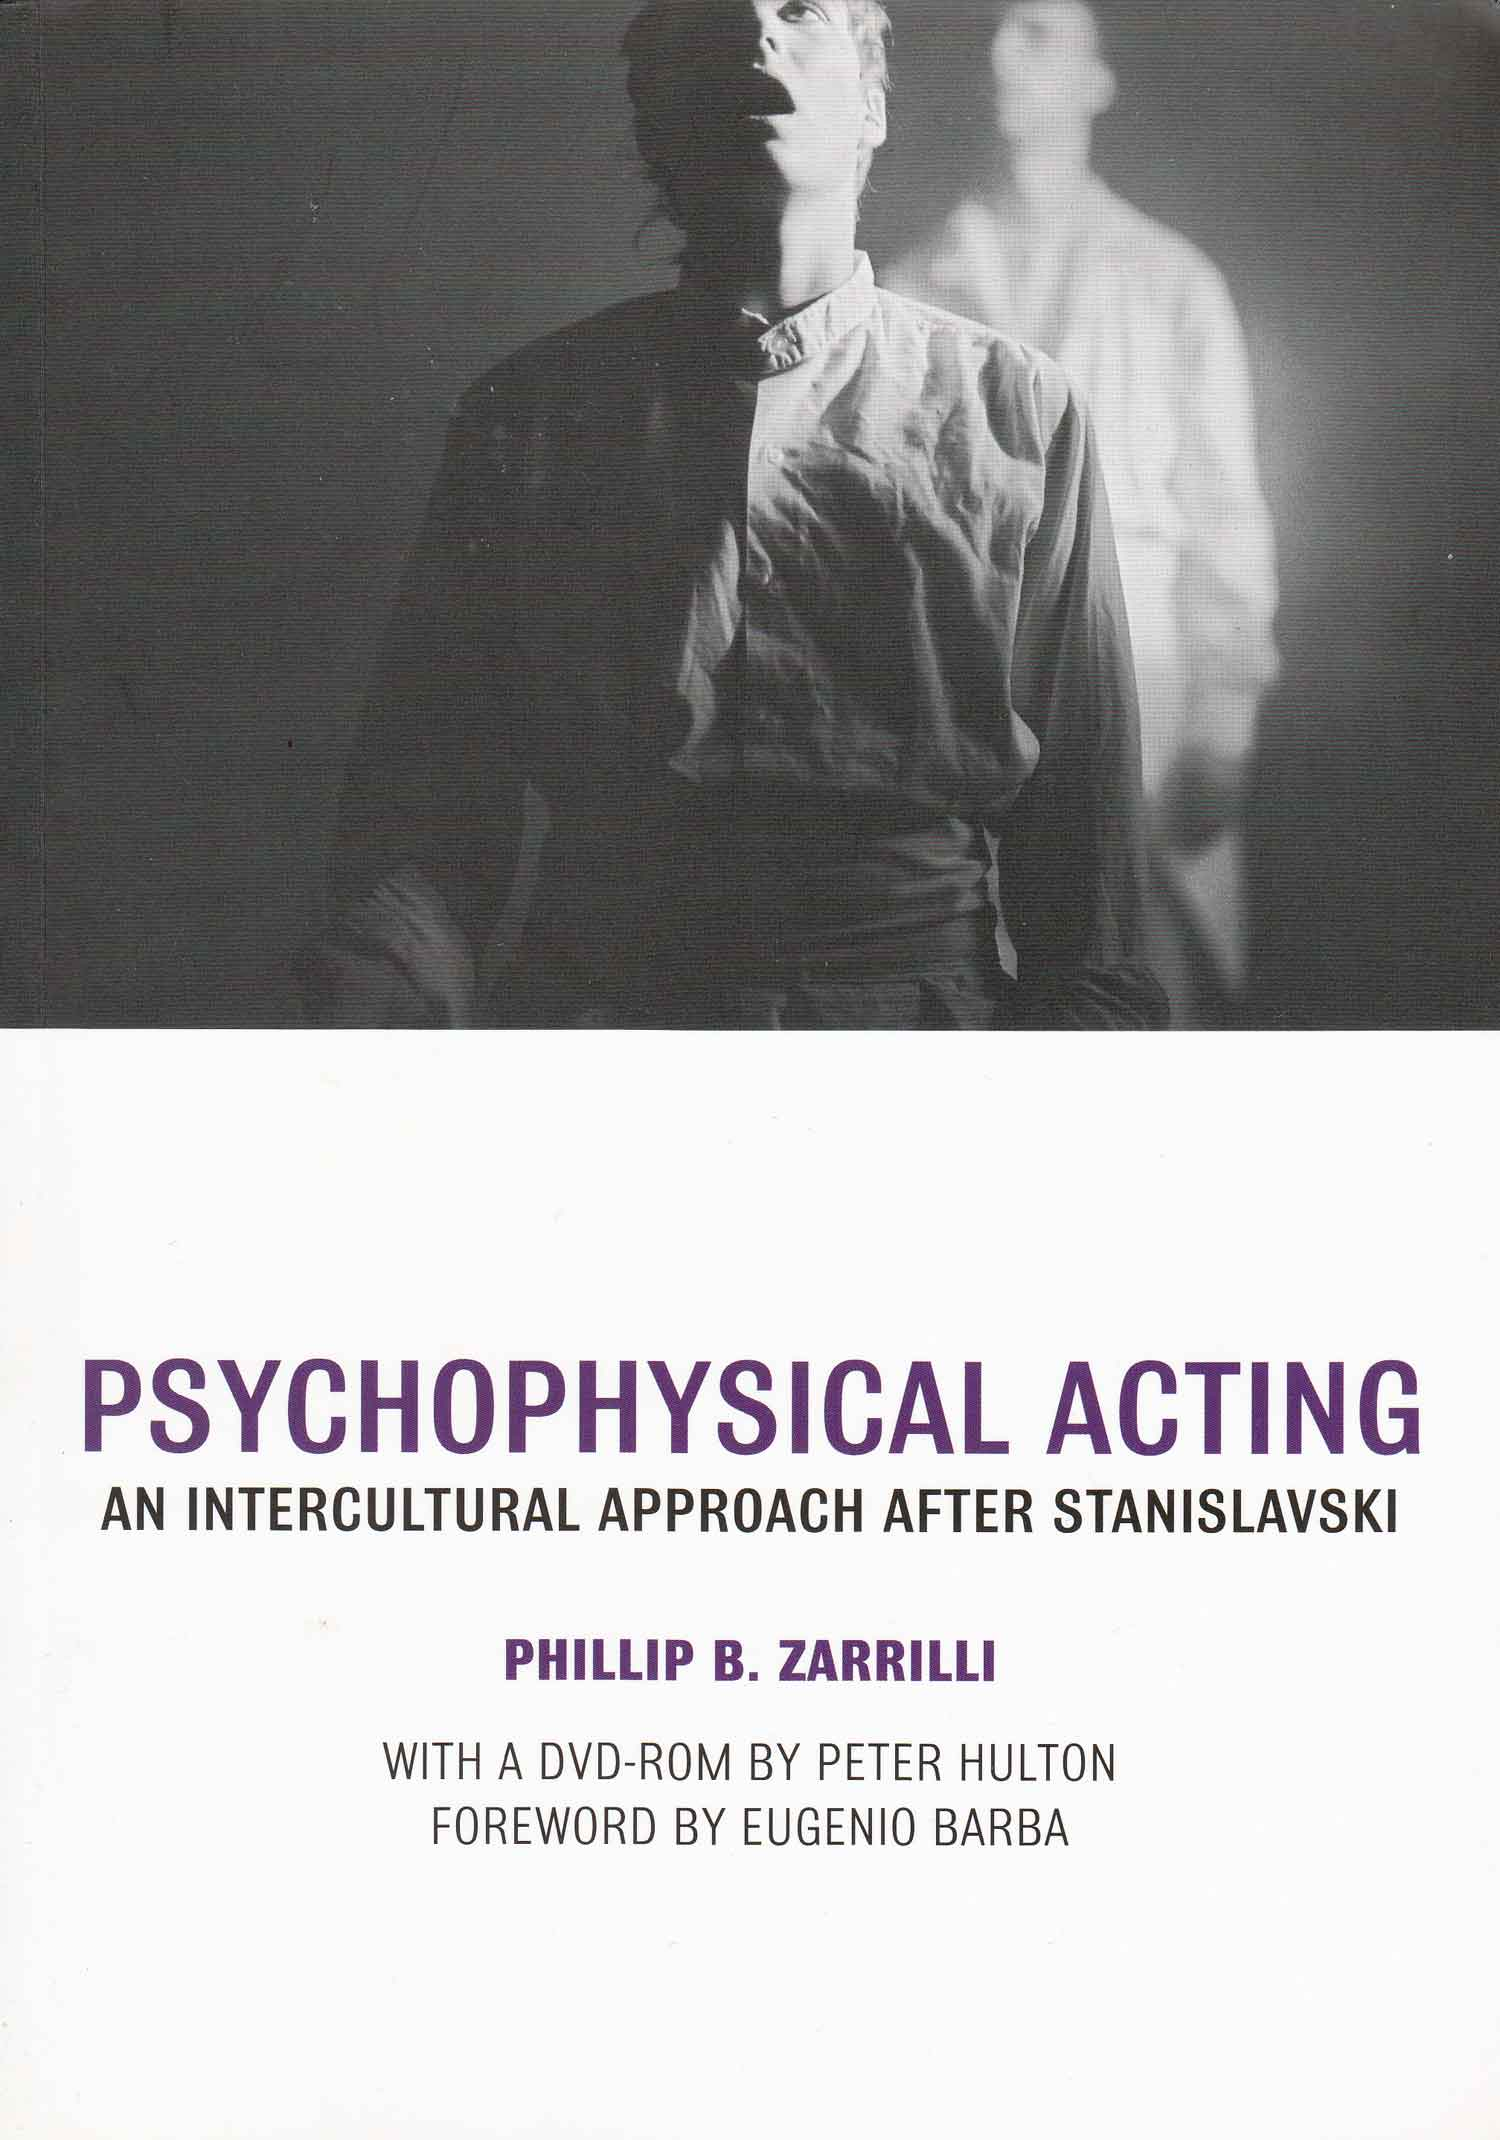 Cover of  Psychophysical Acting , published by Routledge (2009).